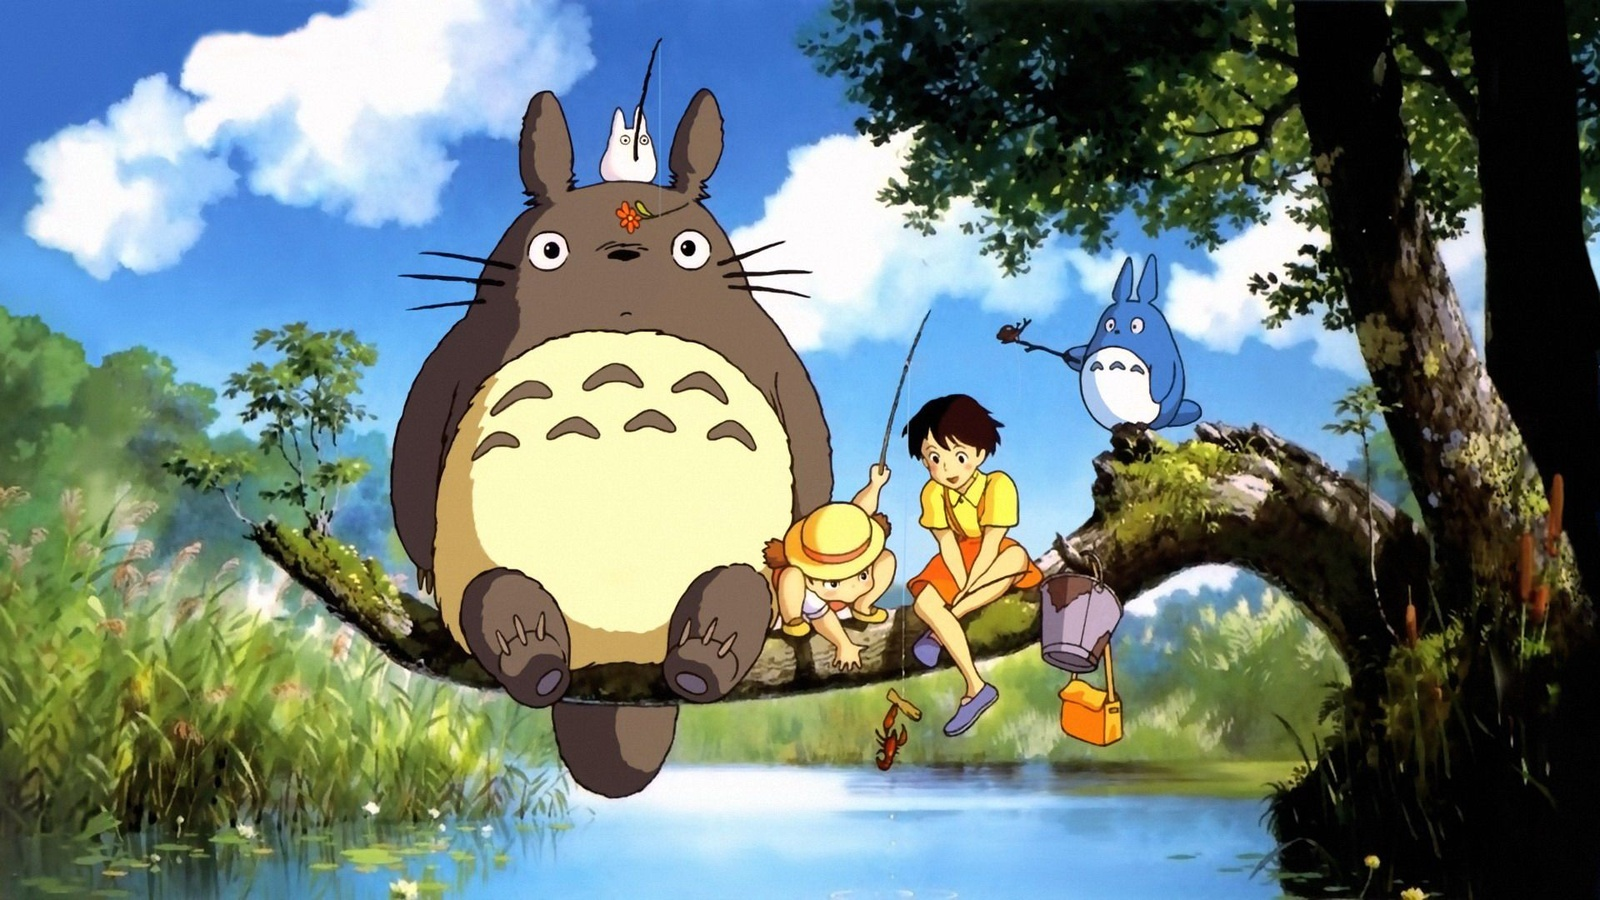 Мой сосед Тоторо / Tonari no Totoro background